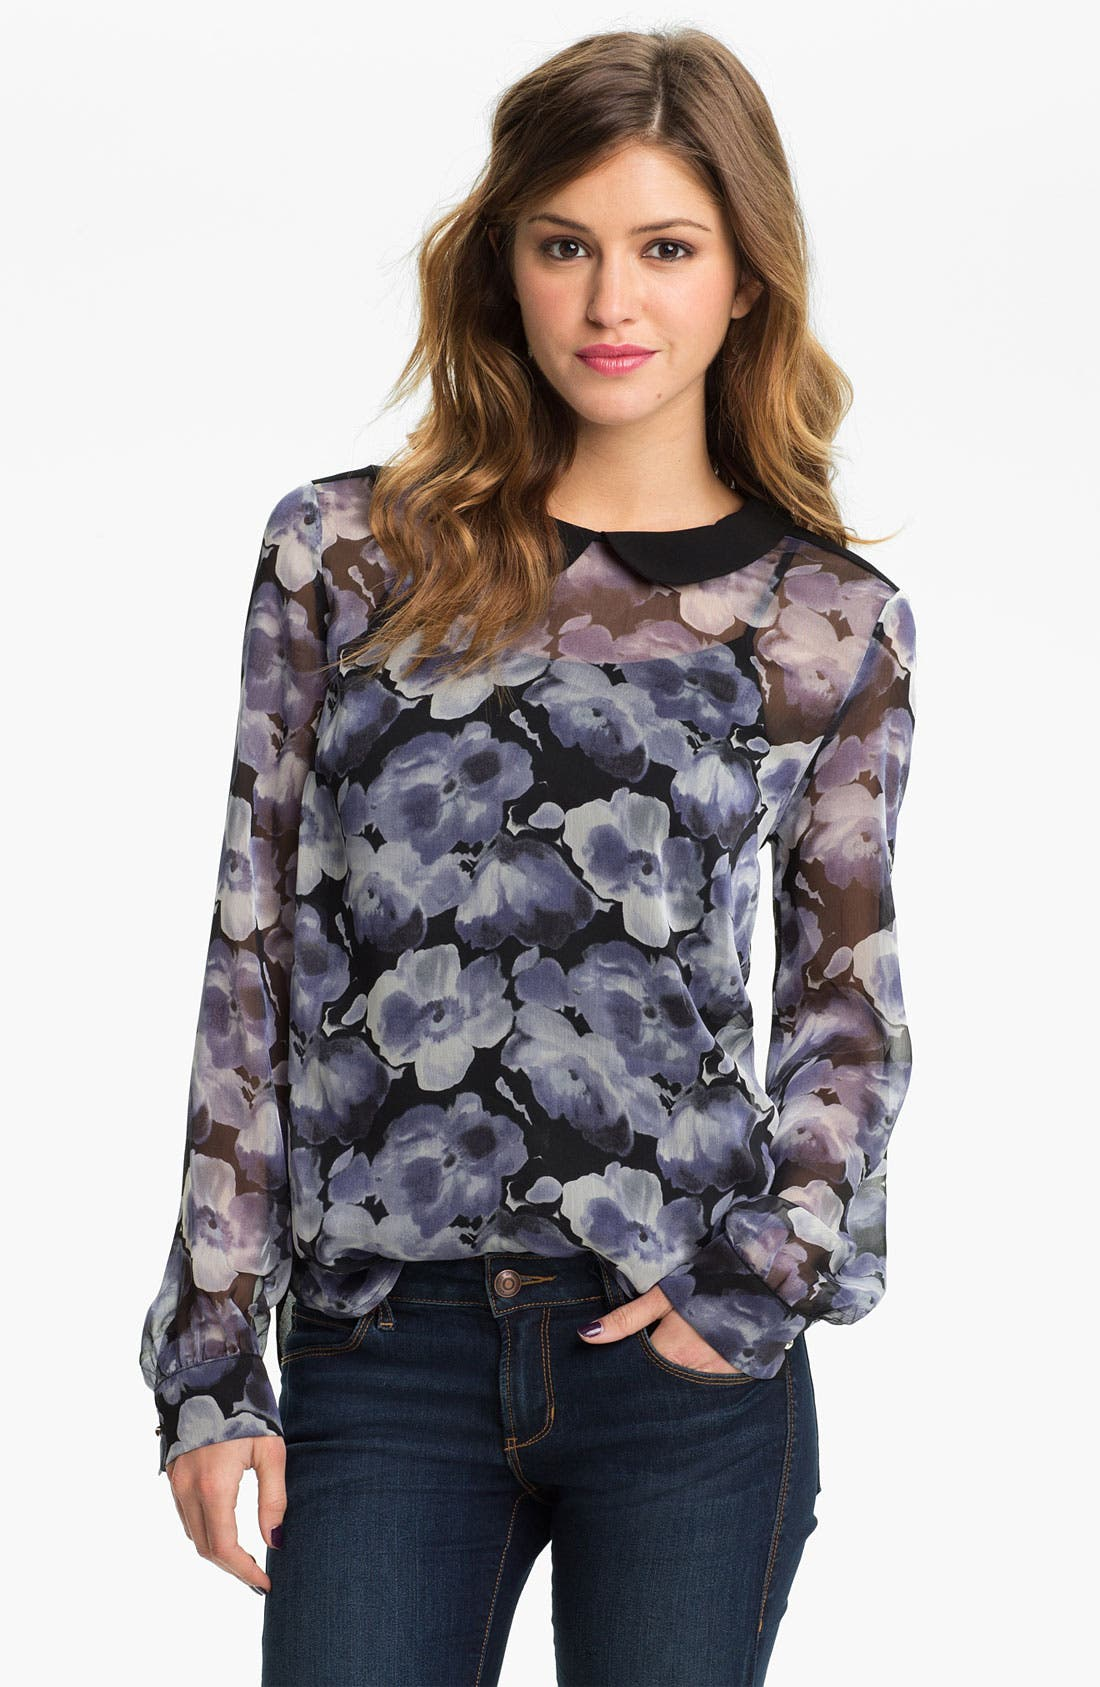 Alternate Image 1 Selected - Chloe K Print Chiffon Blouse (Juniors)